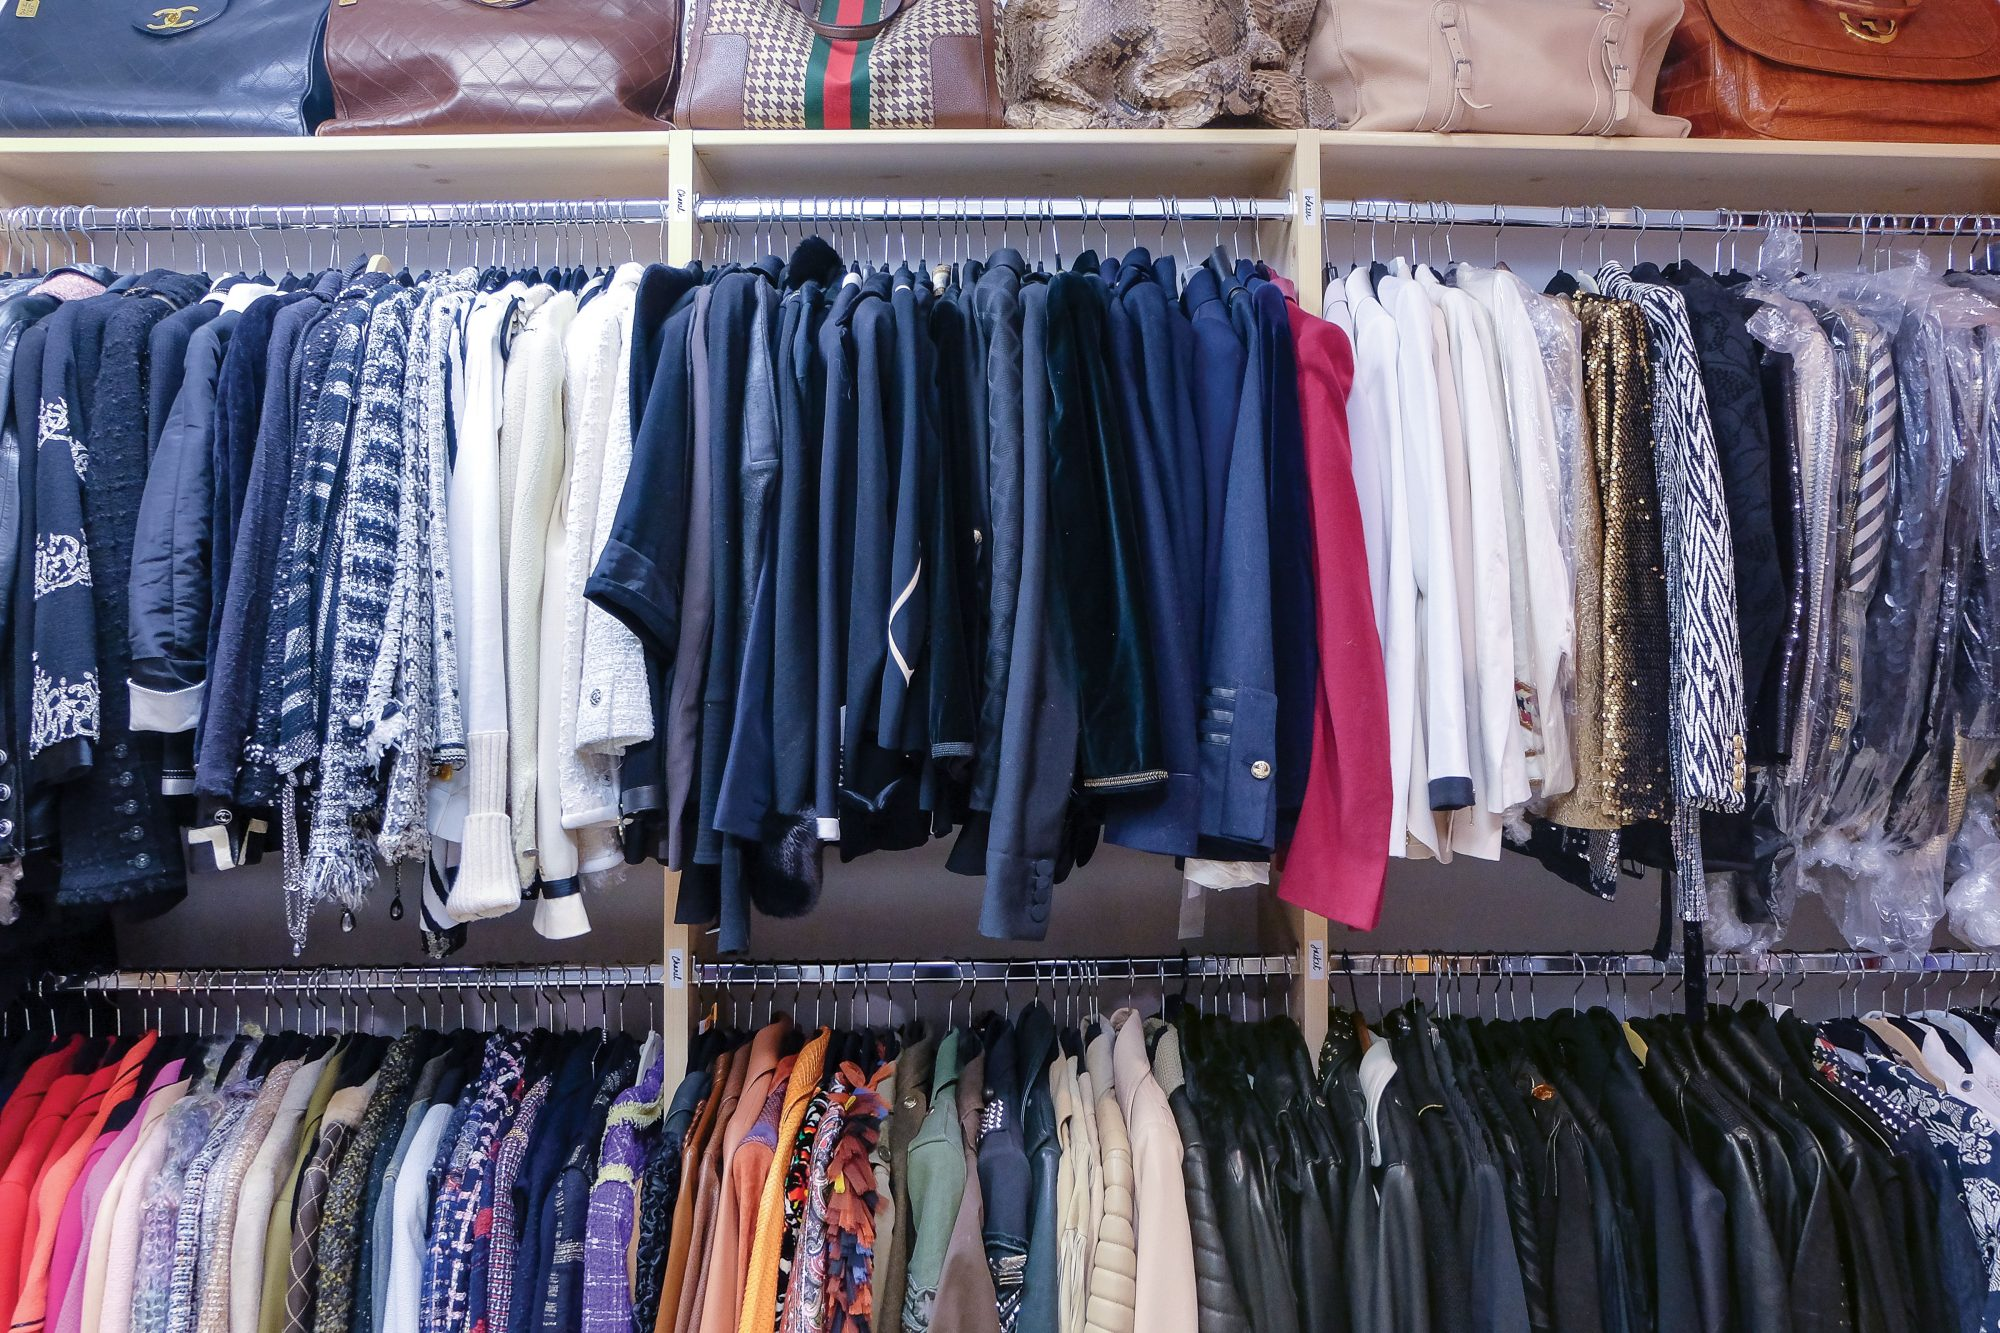 5 Things You'll Find in Every Celeb Closet, According to These Professional Organizers